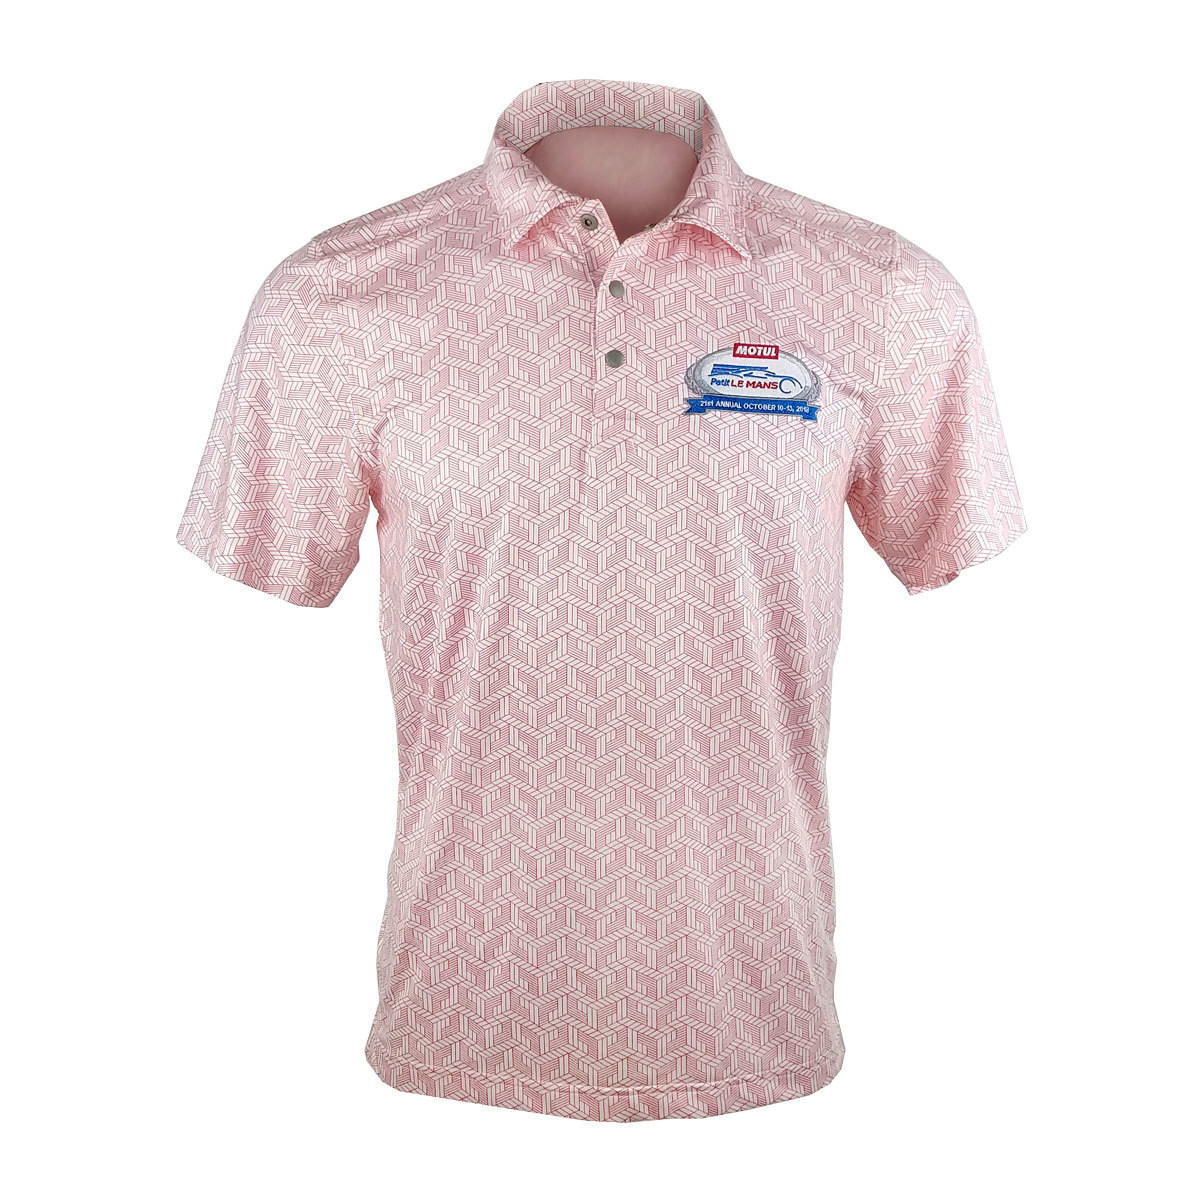 2018 MPLM Men's Golf Shirt - Tour Red